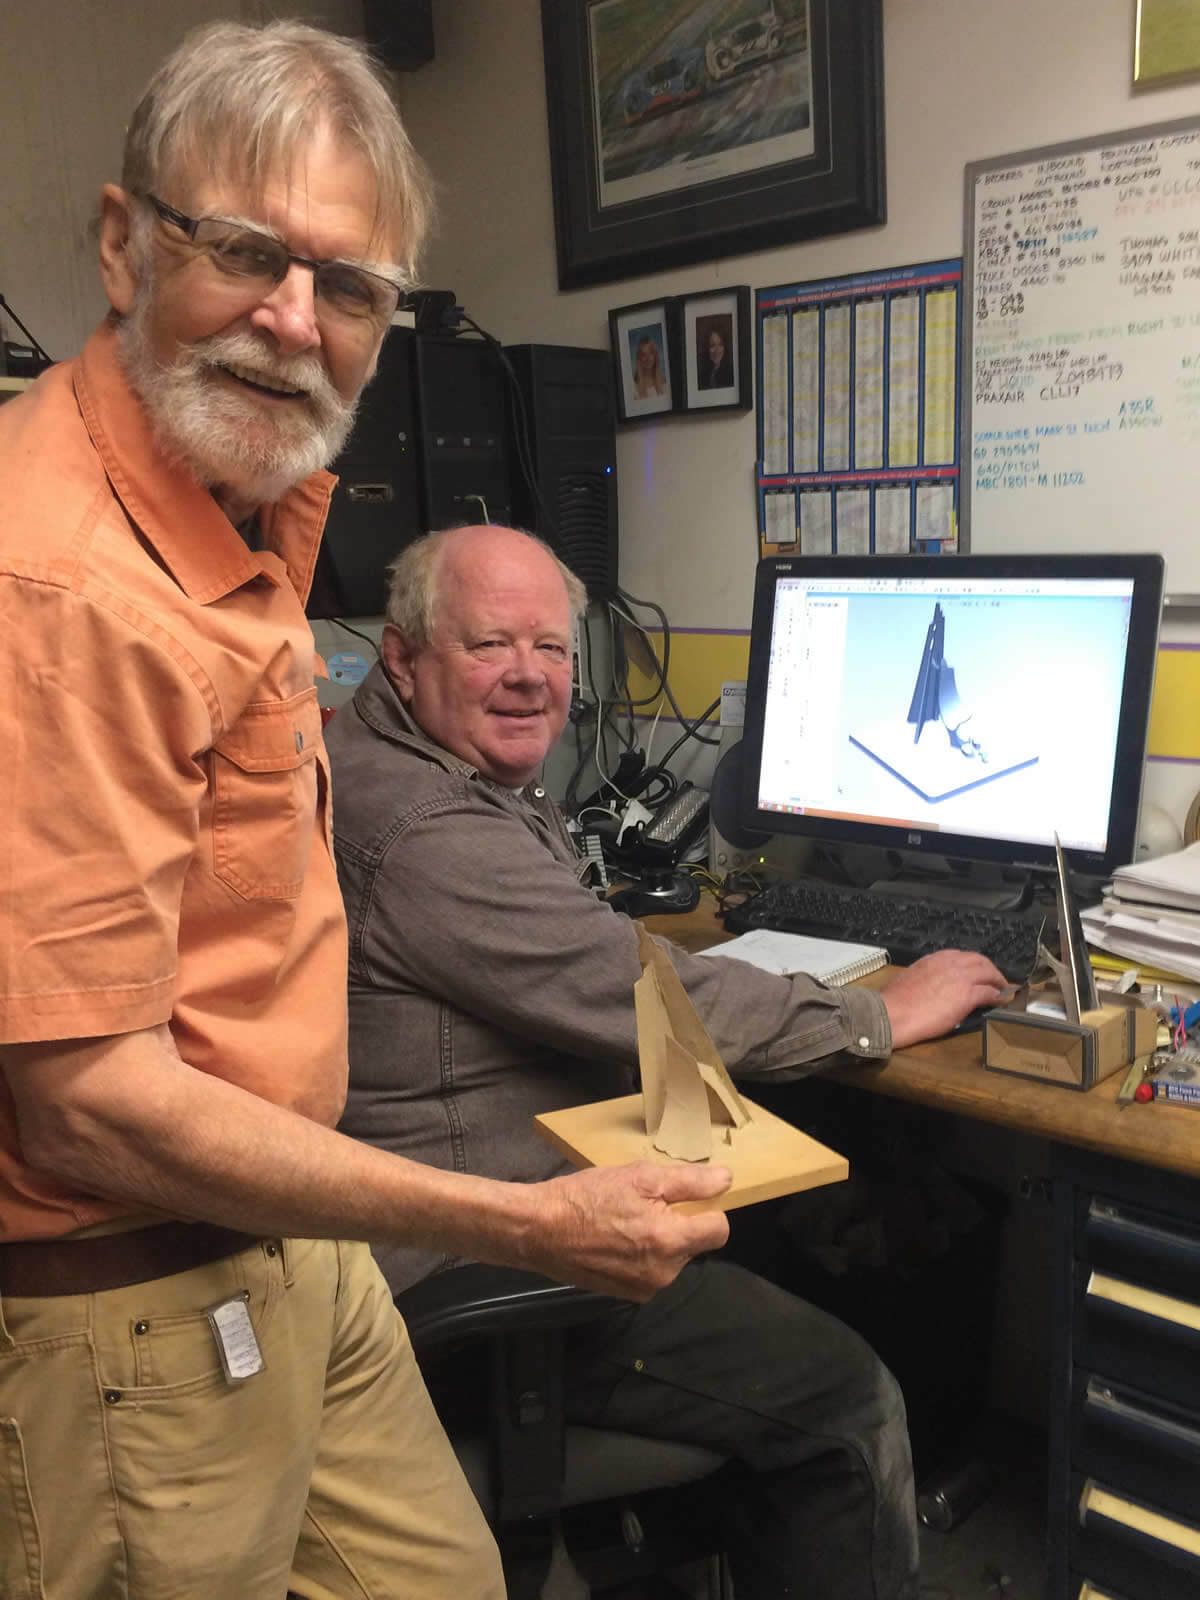 Bill and Tom with their Iceberg model in SOLIDWORKS